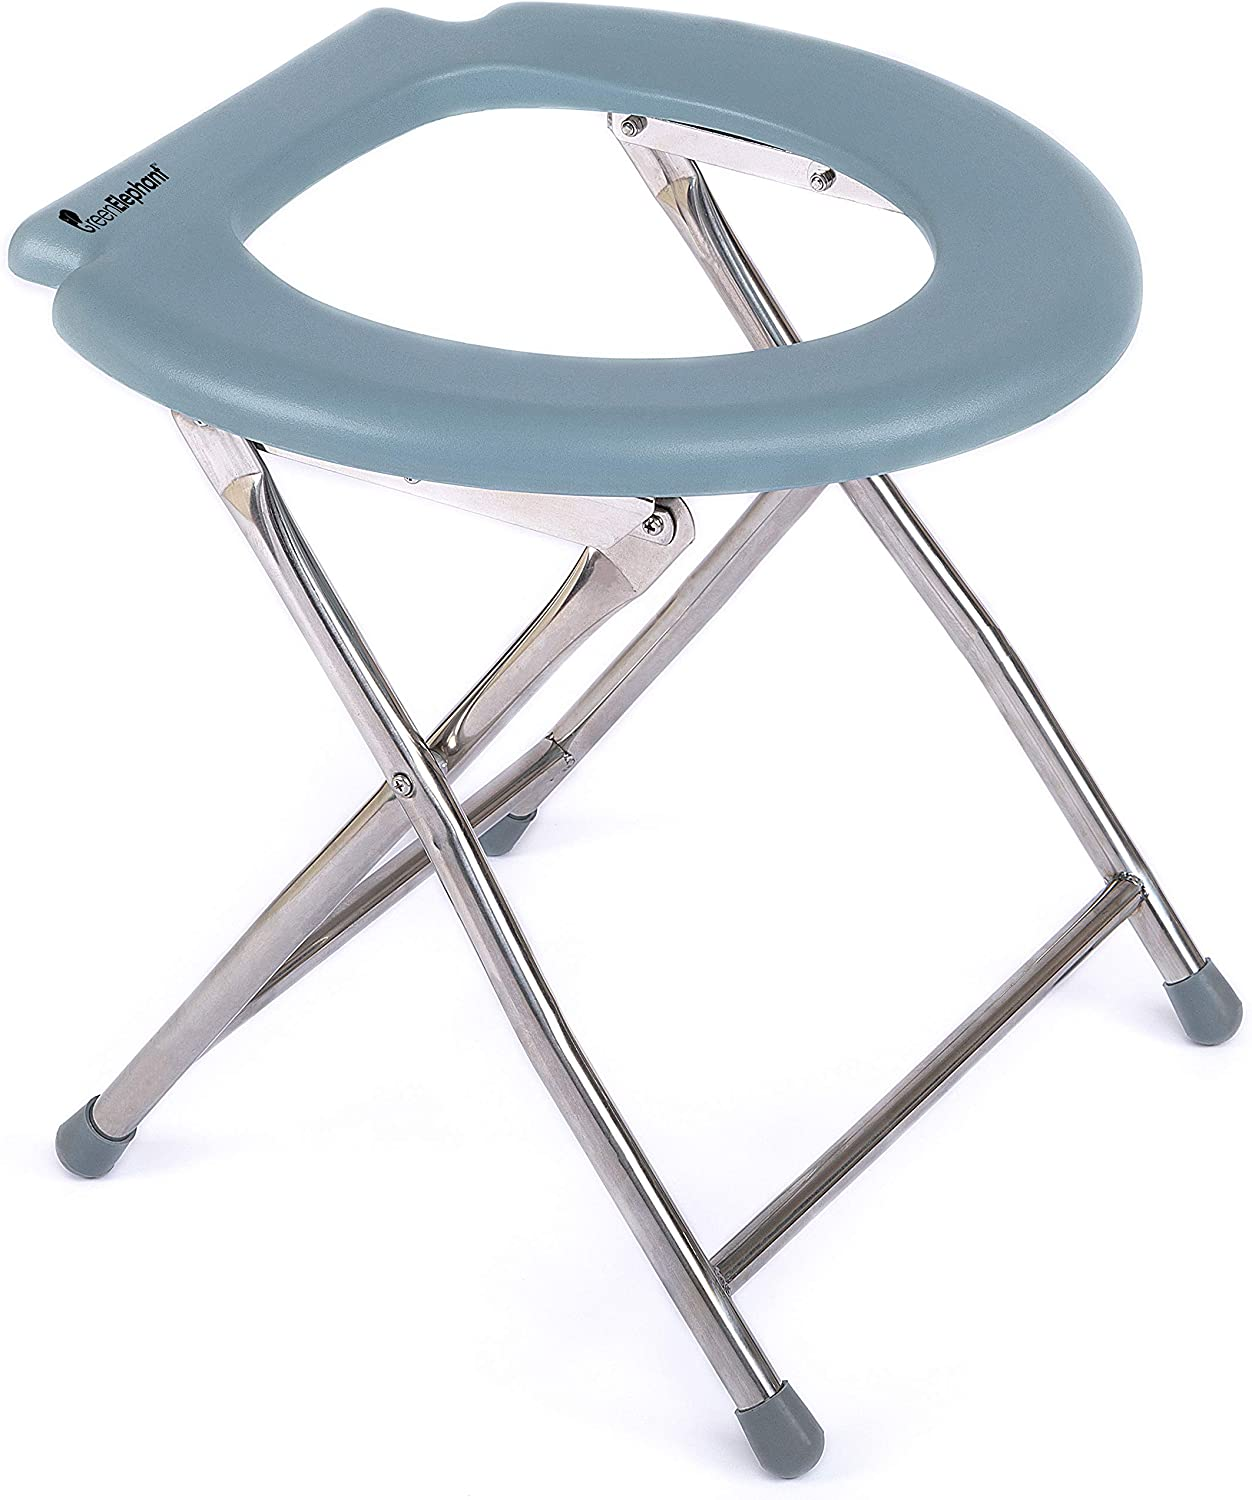 Green Elephant Folding Commode Portable Toilet Seat - Porta Potty and Commode Chair - Comfort Chair Perfect for Camping, Hiking, Trips, Construction Sites, and More - Walmart.com - Walmart.com